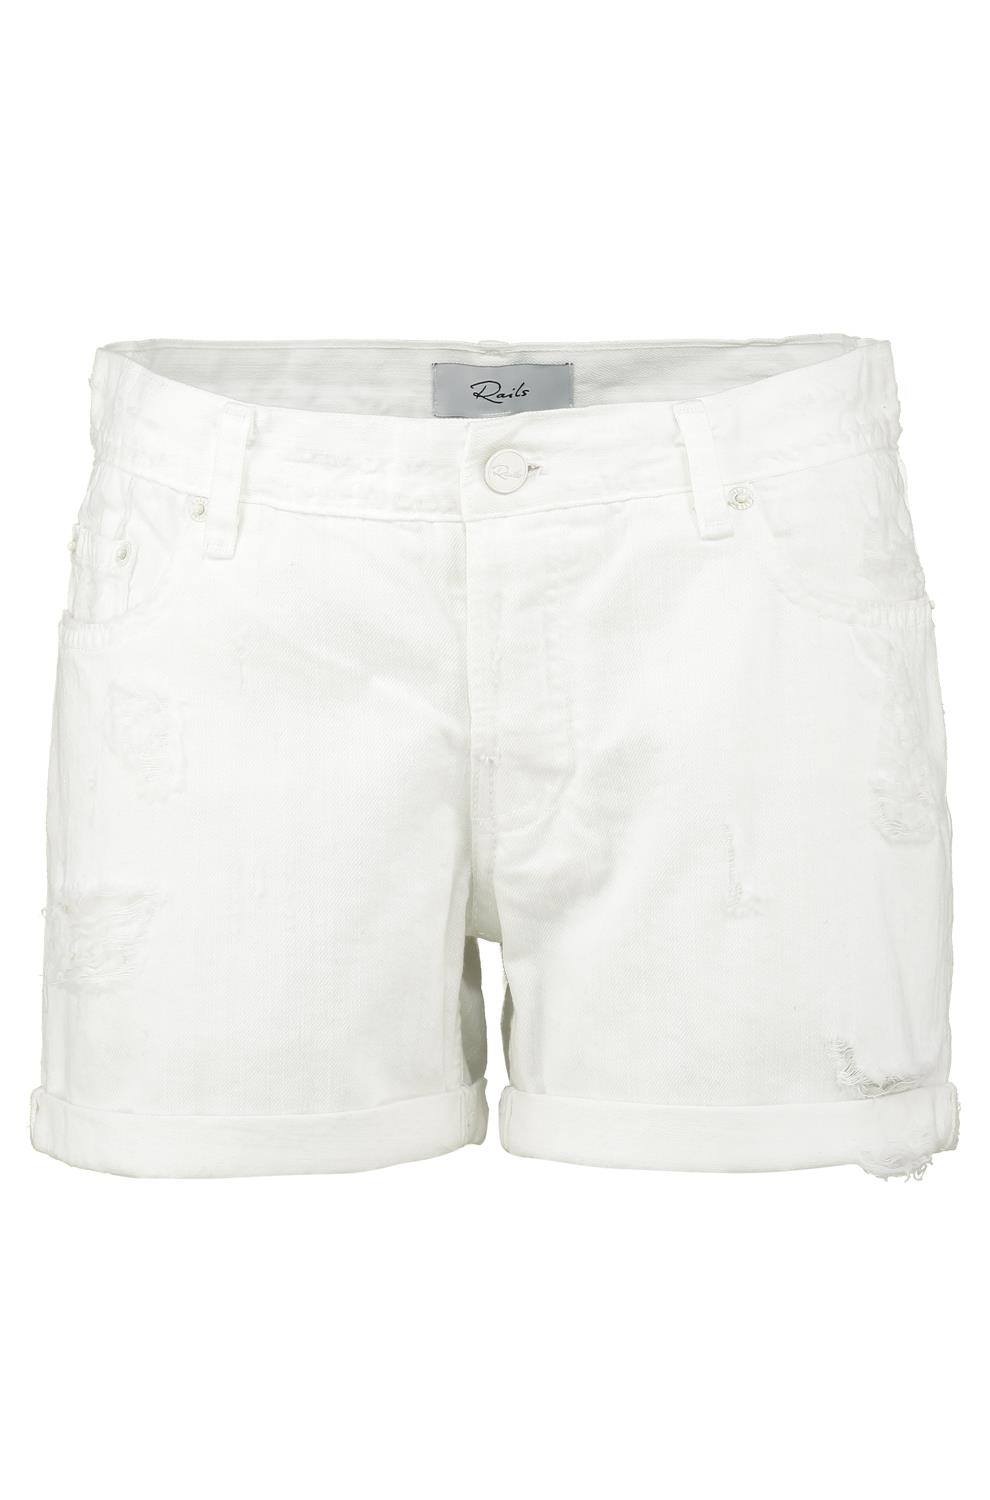 white shorts logan denim shorts in white image